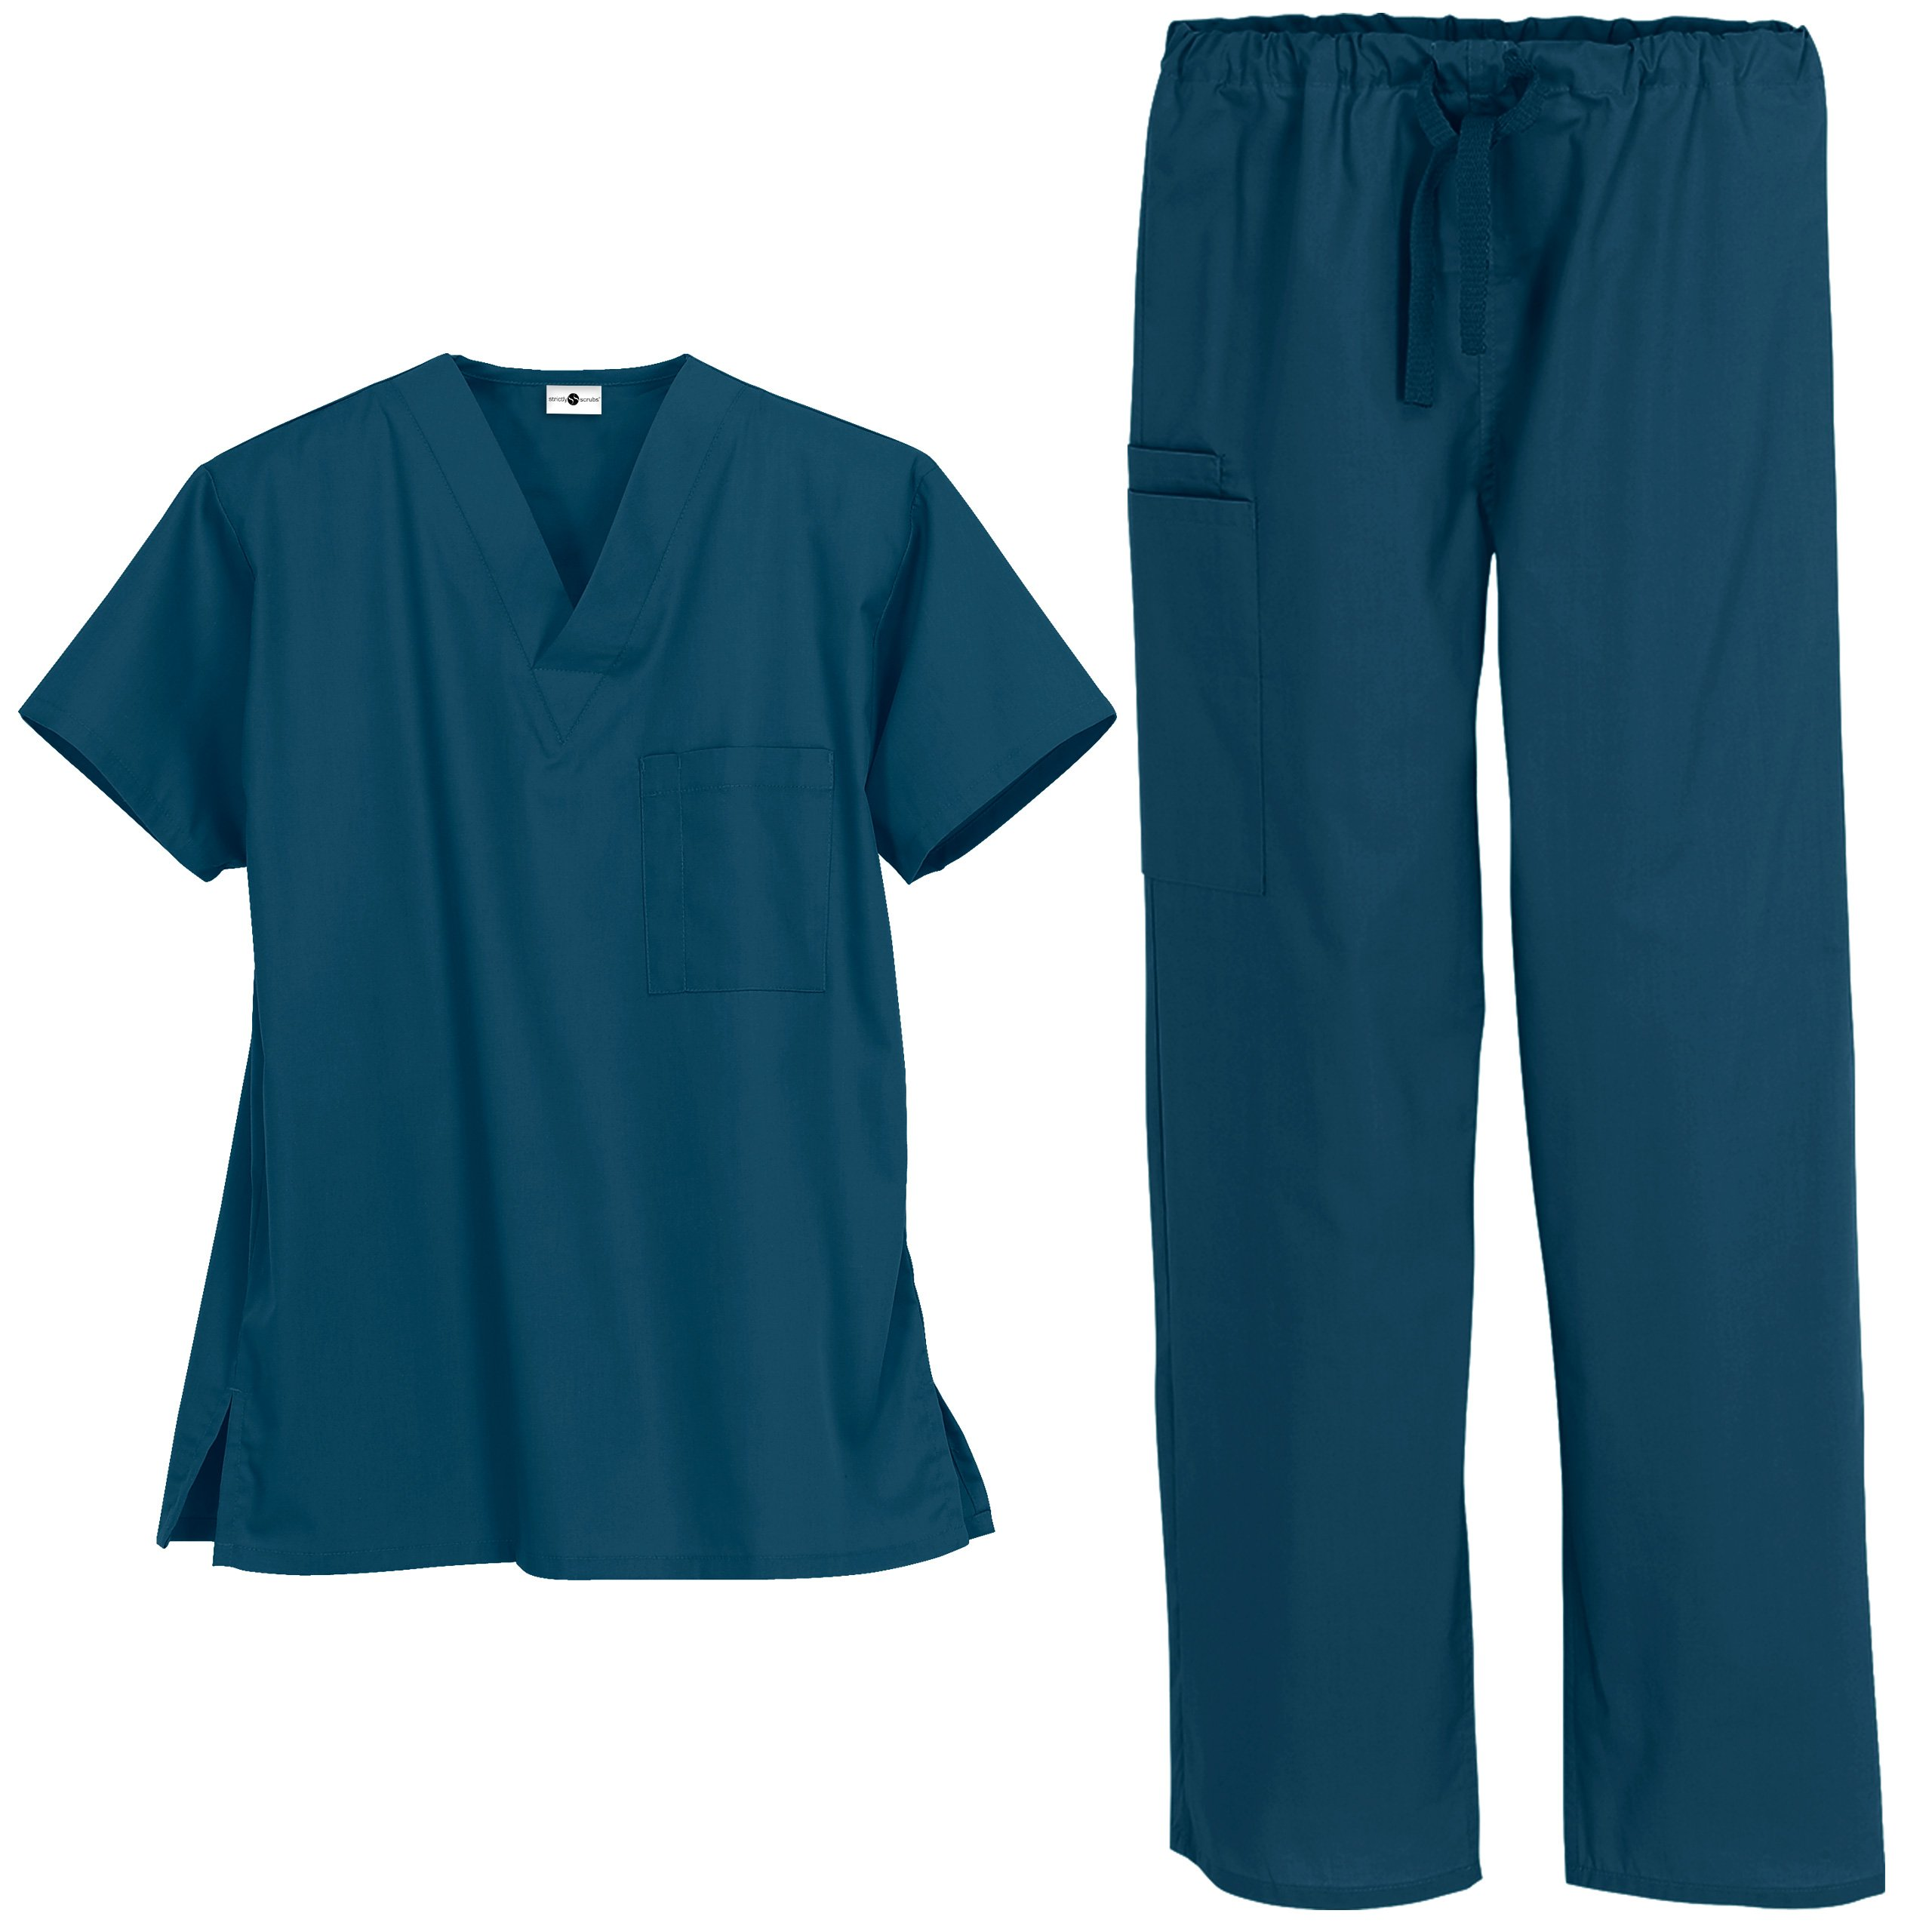 Unisex Medical Uniform Scrub Set – Includes V-Neck Top and Drawstring Pant (XS-3X, 13 Colors) (Small, Caribbean Blue)